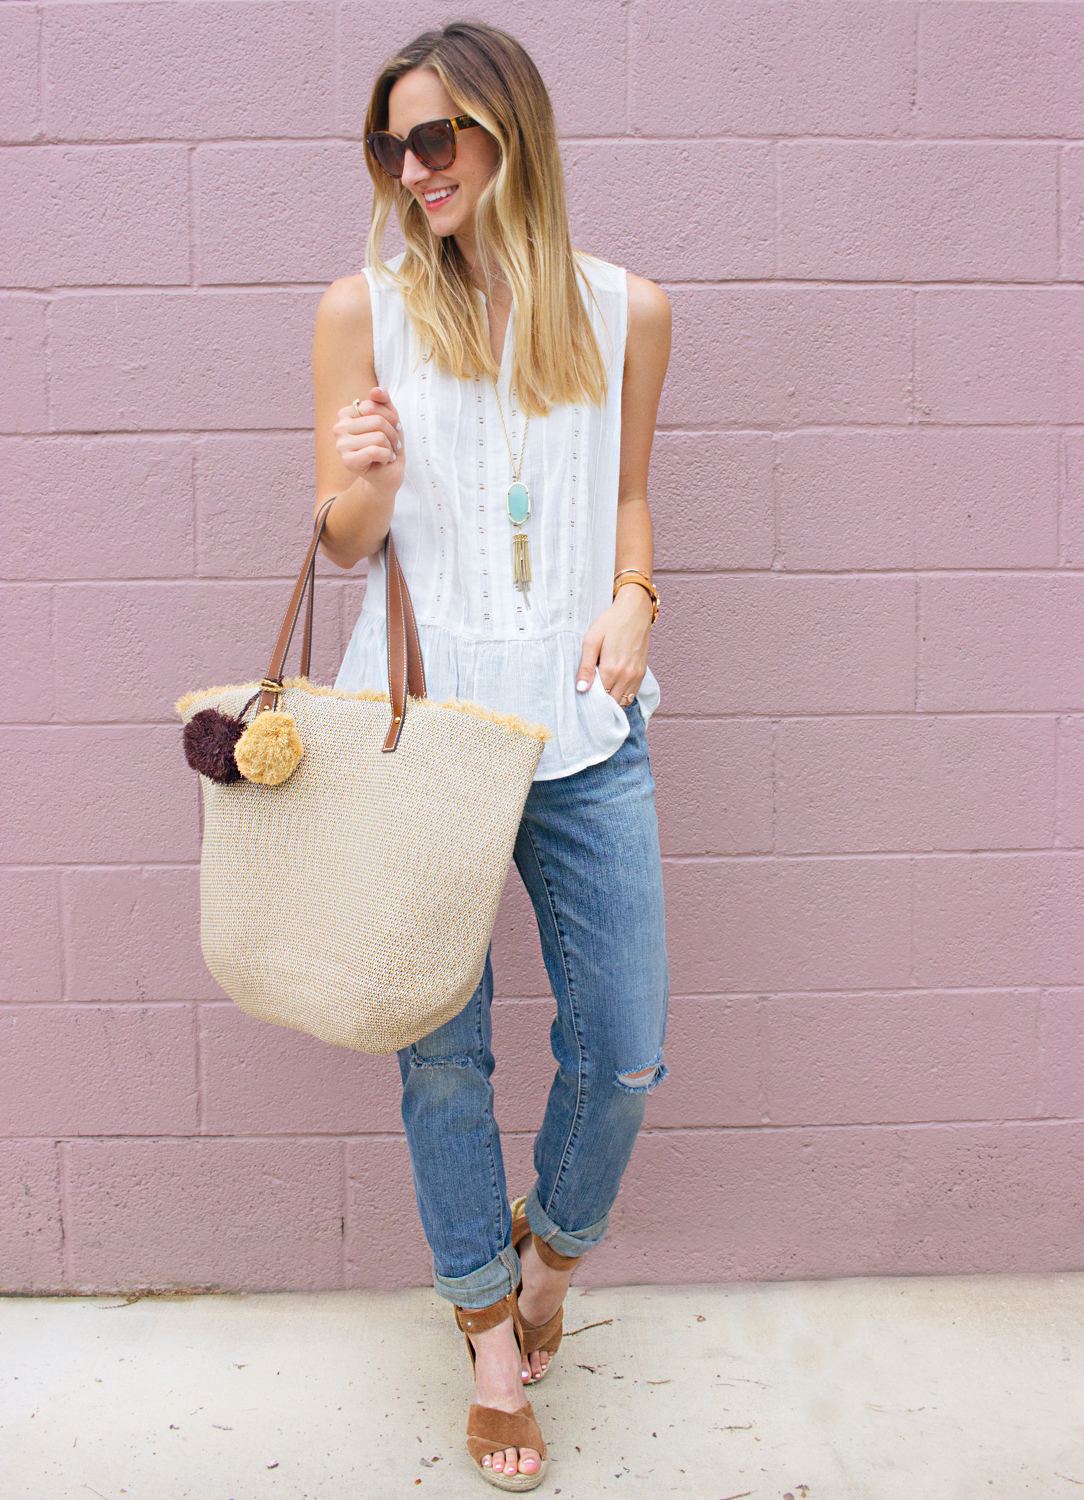 livvyland-blog-olivia-watson-caslon-nordstrom-boyfriend-jeans-white-eyelet-drop-waist-tank-top-beach-bag-tote-kendra-scott-rayne-necklace-prada-cateye-sunglasses-austin-texas-fashion-blogger-2